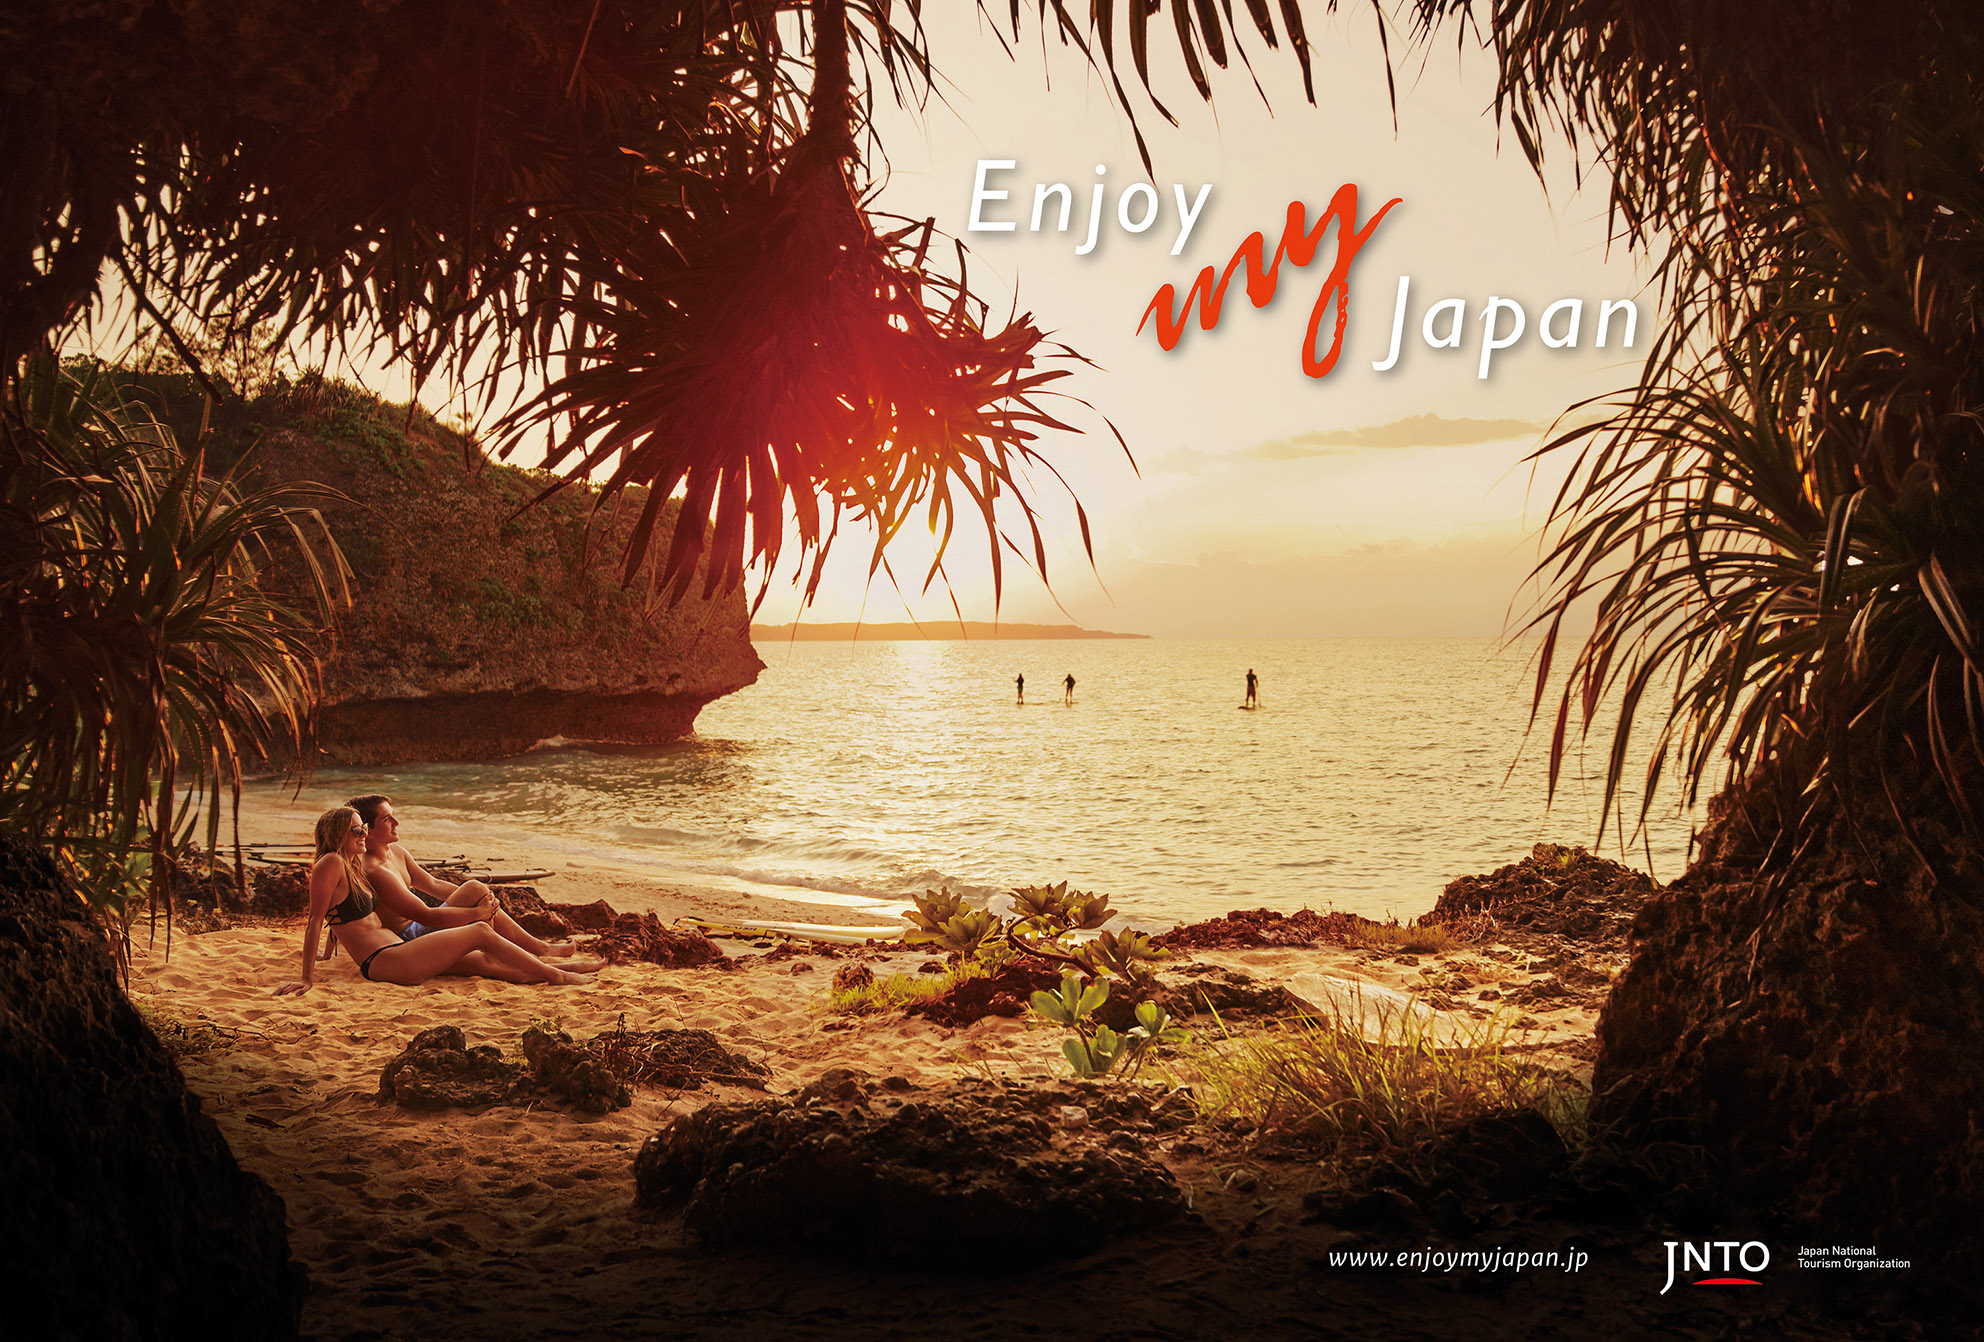 Enjoy My Japan - Global Ad Campaign